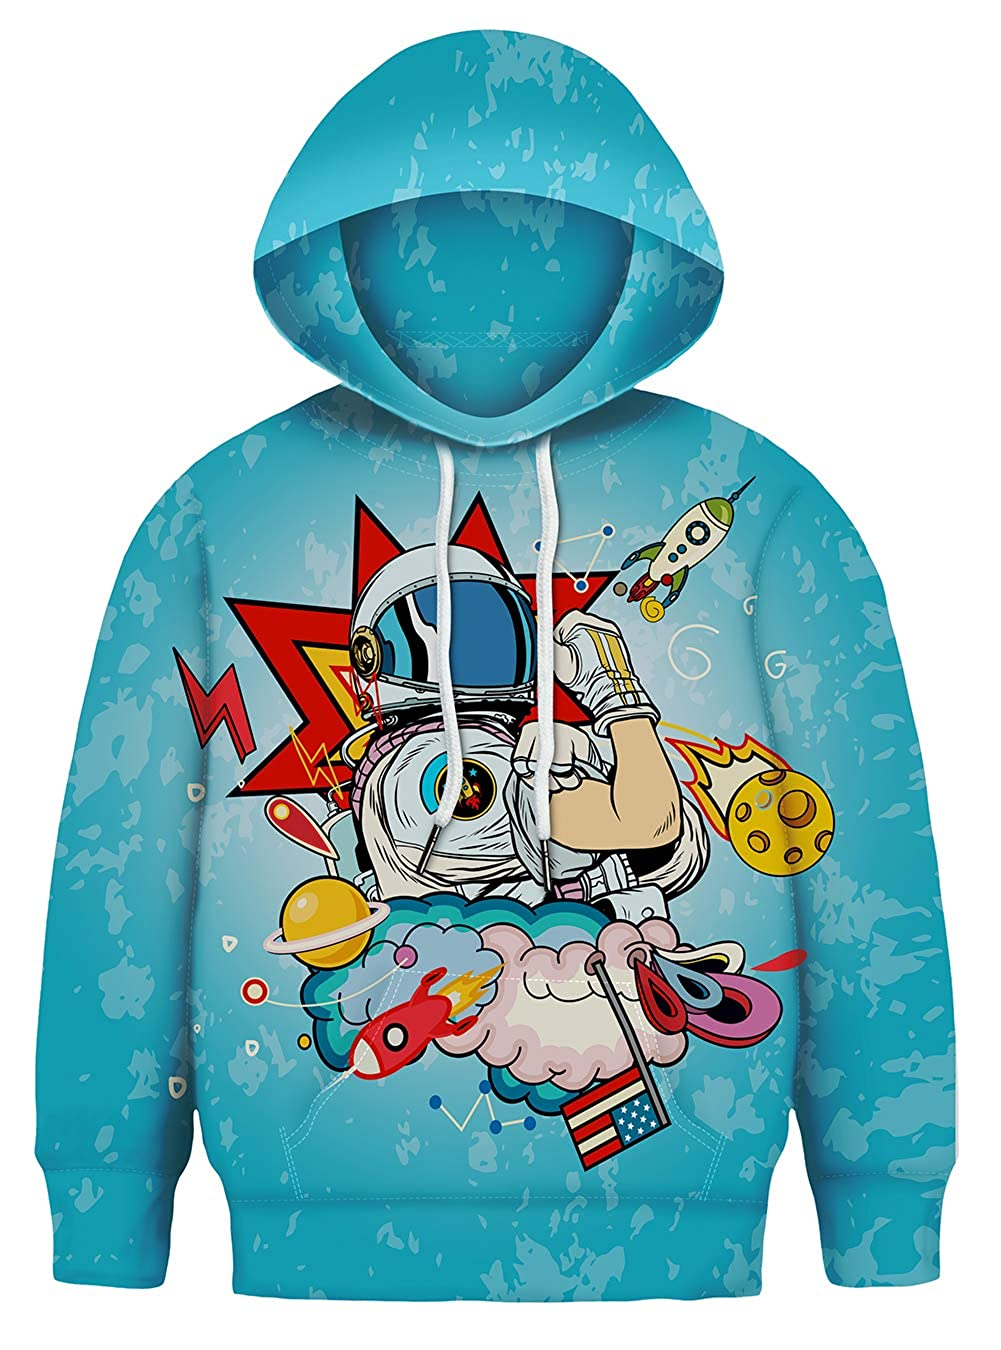 Asylvain Teen Boys Girls Hoodies with 3D Print Graphic Colorful Deisgn Sweatshirt for Kids with Pocket 3-14 Years